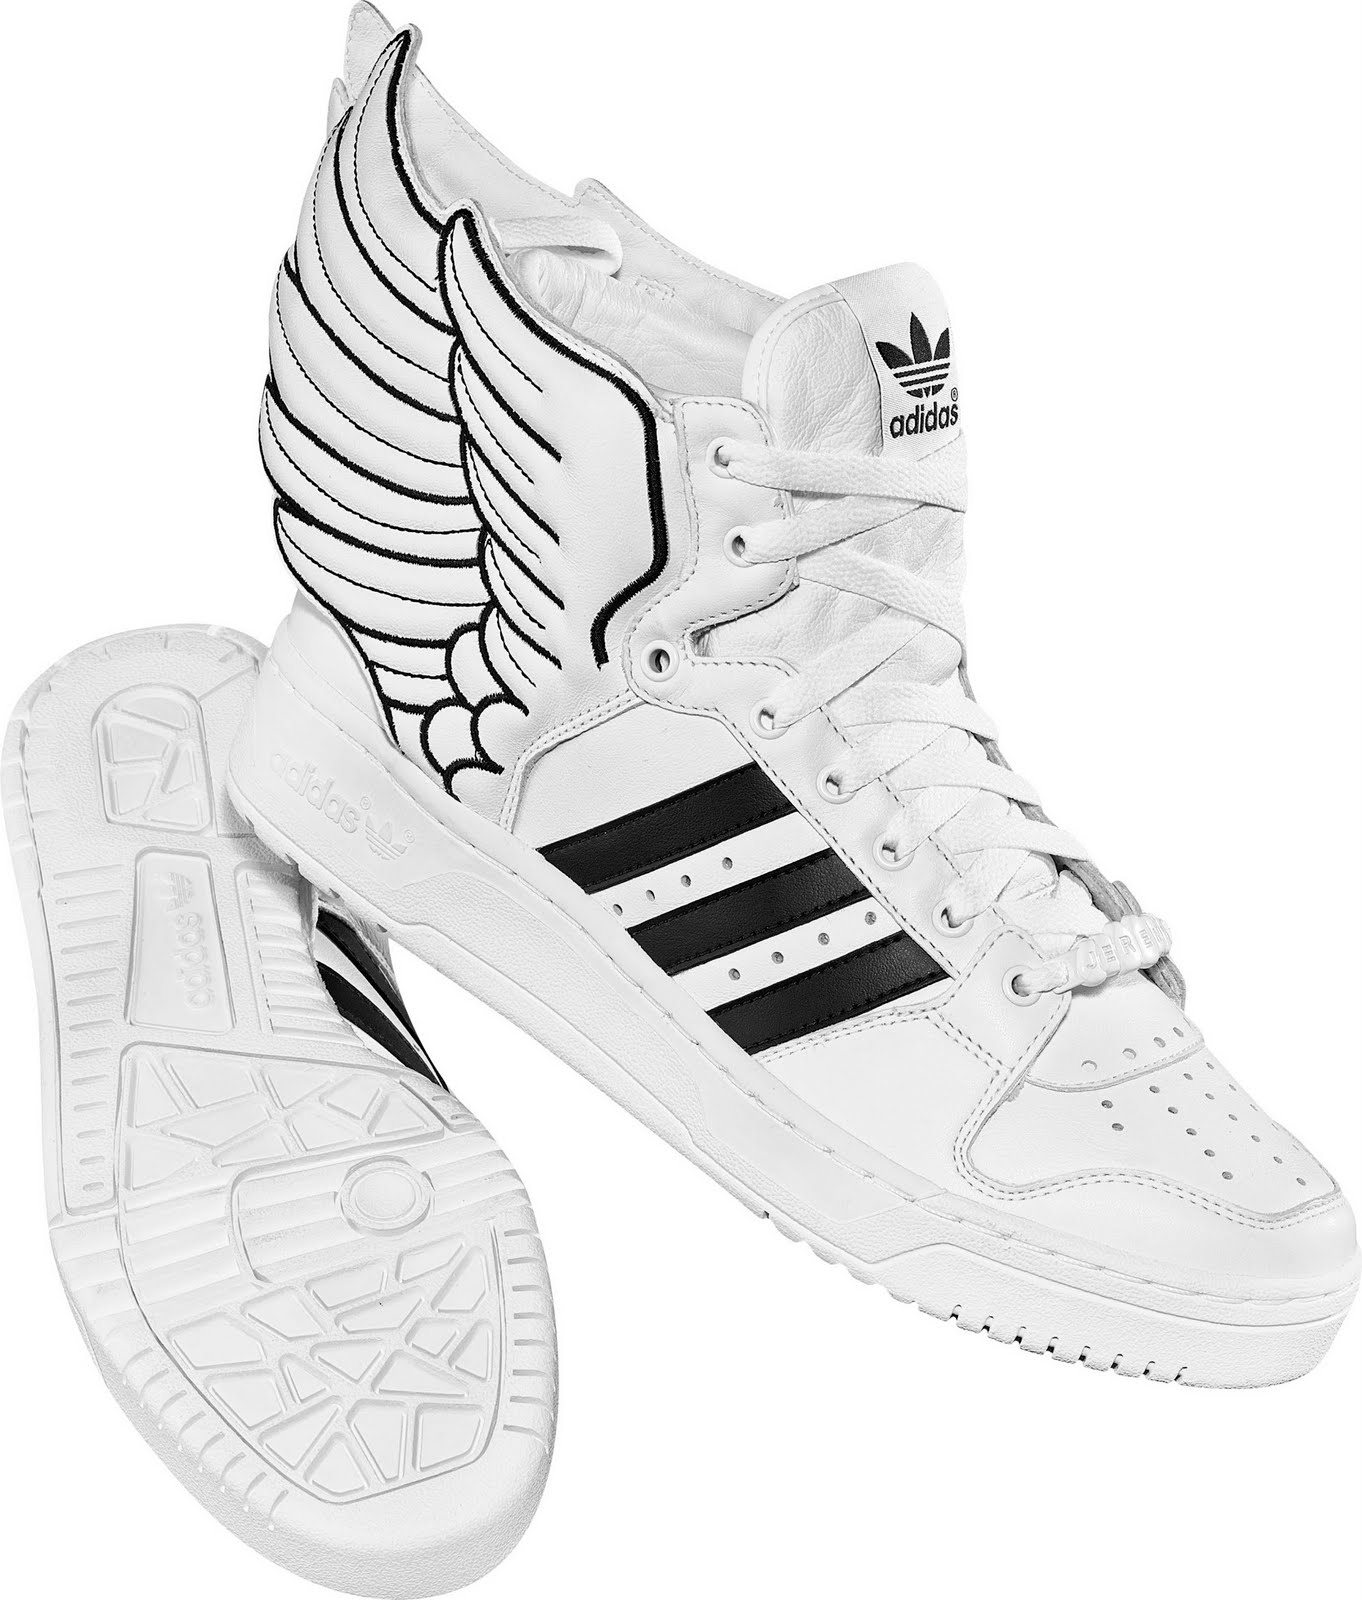 online store c7ae7 abe16 ... netherlands winged sneakers by jeremy scott. image courtesy of adidas  philippines d7411 f7b53